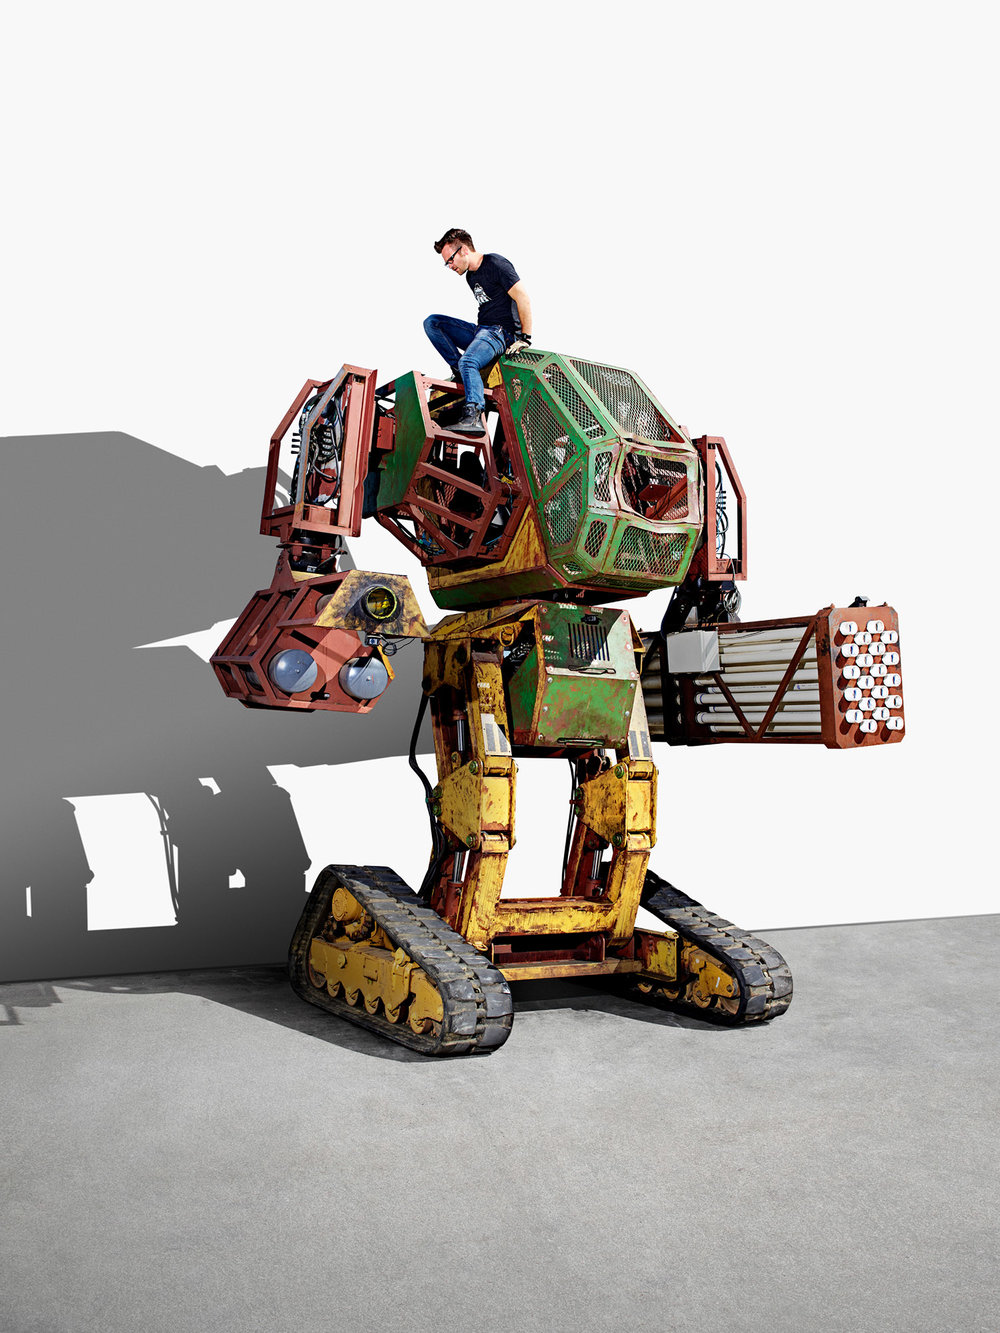 MegaBots Mark III, Oakland, California, 2016